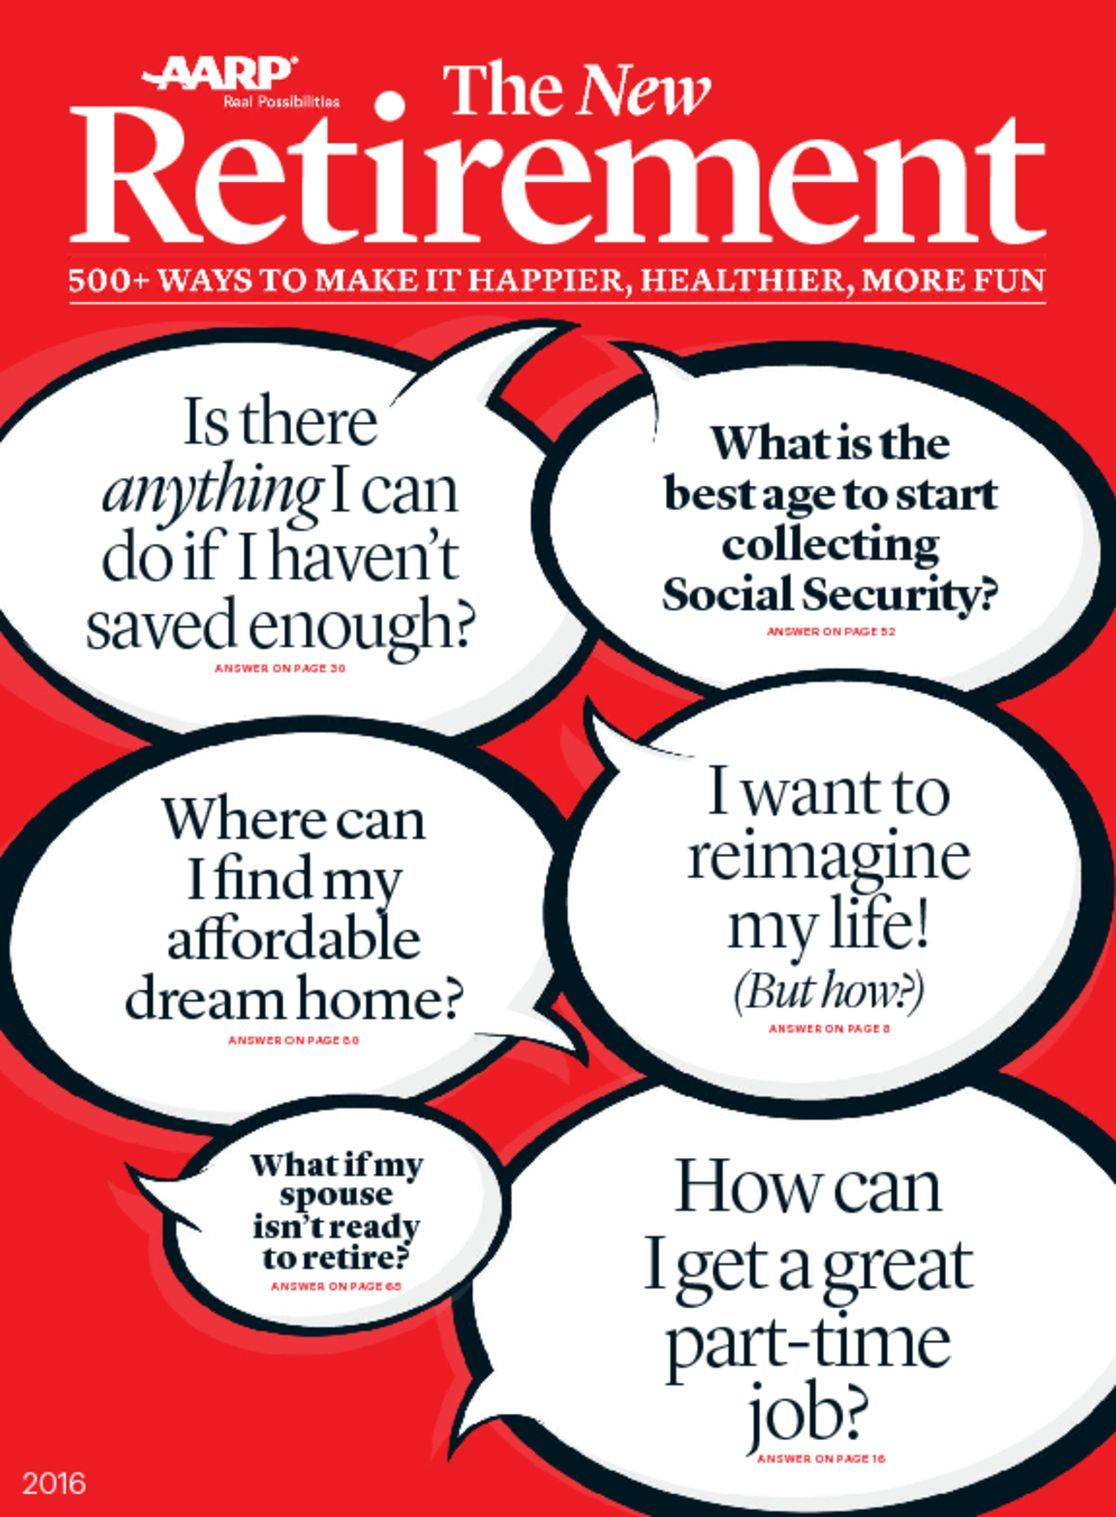 AARP New Guide to Retirement Digital